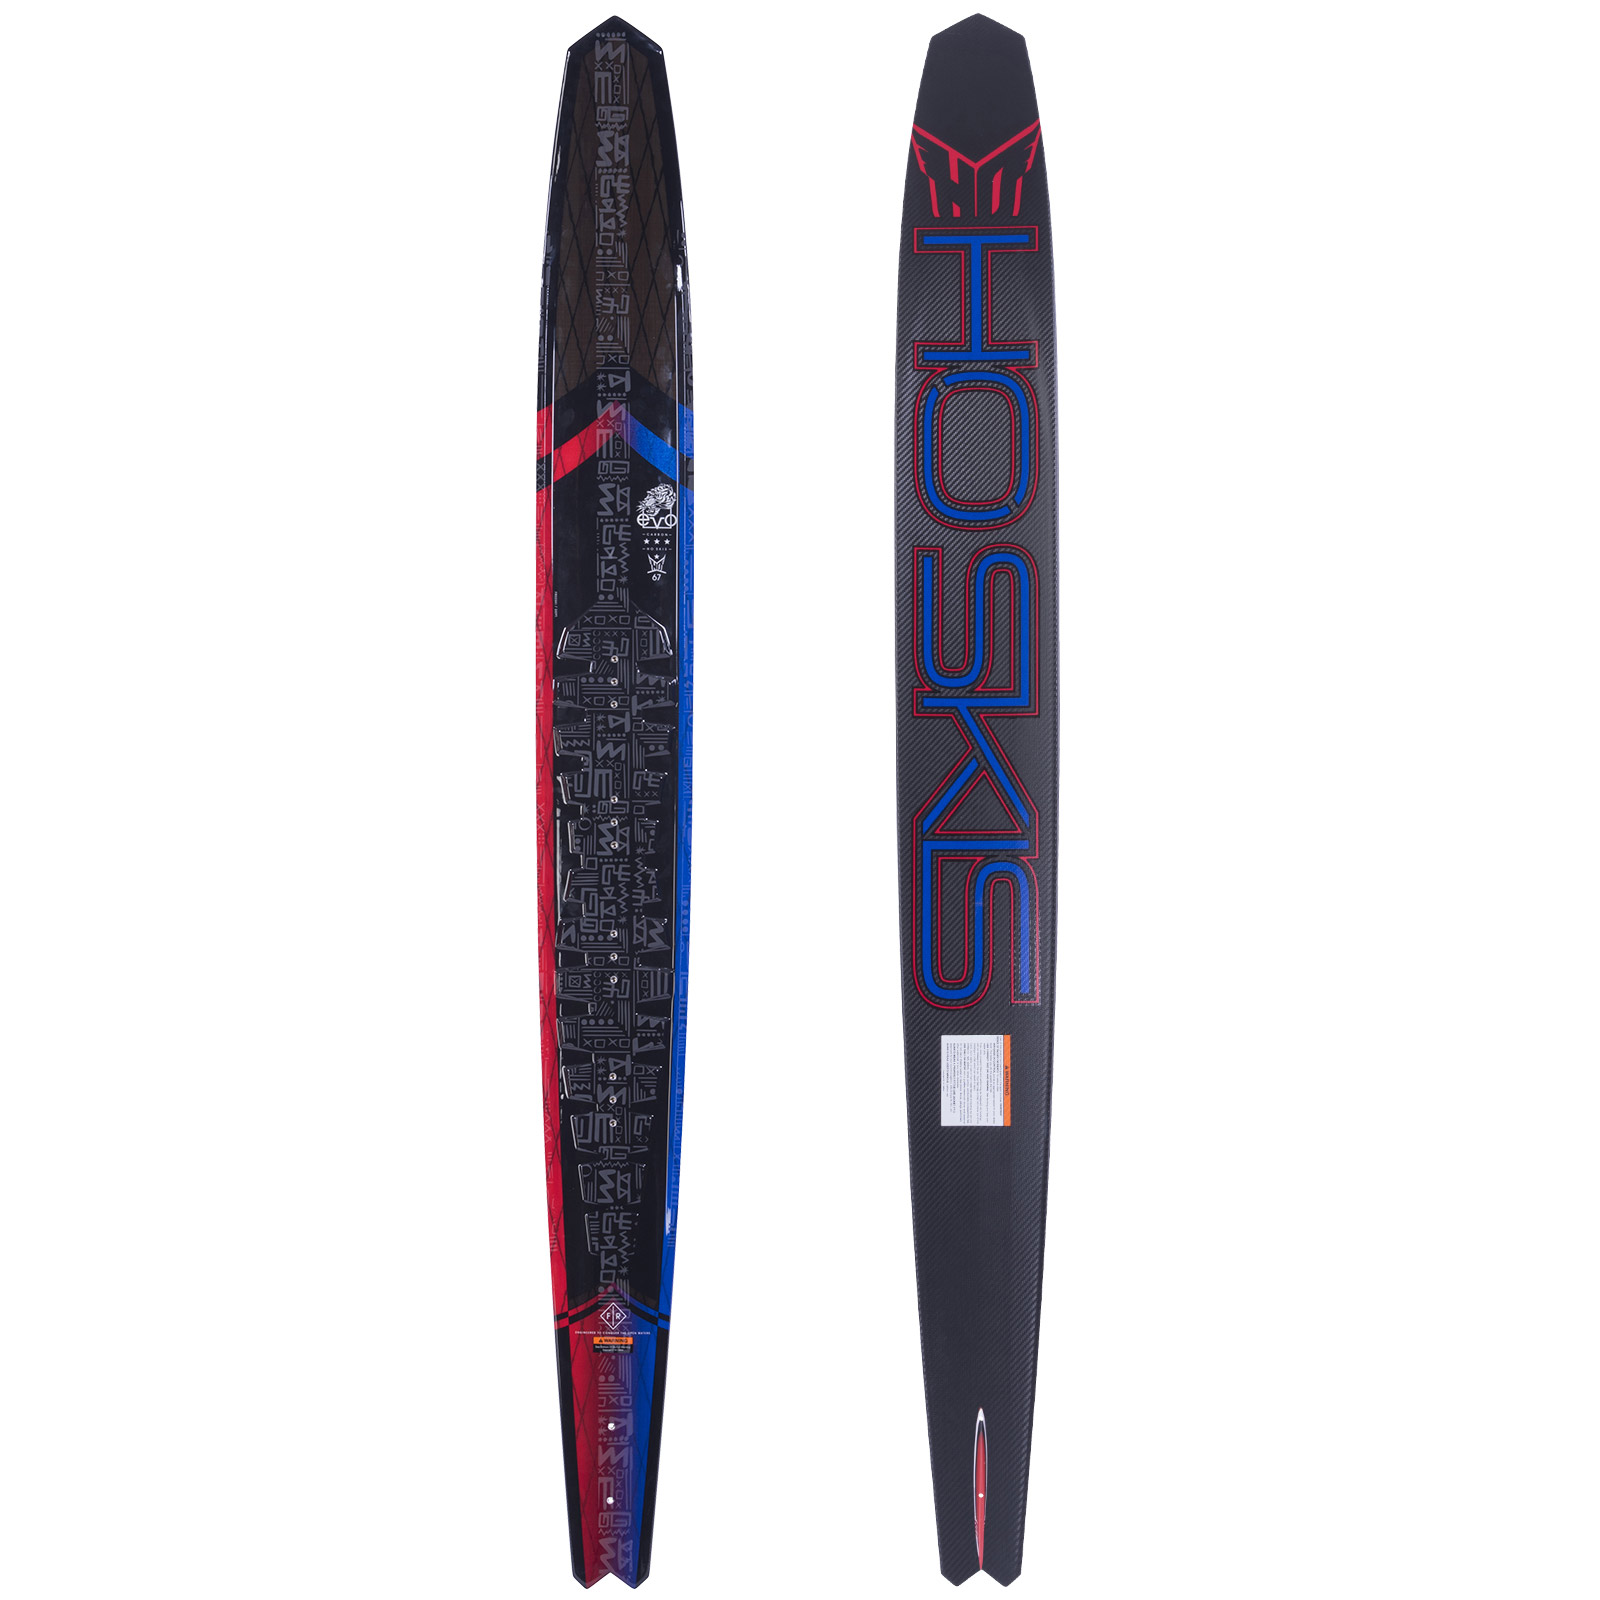 EVO CARBON WATERSKI HO SPORTS 2018